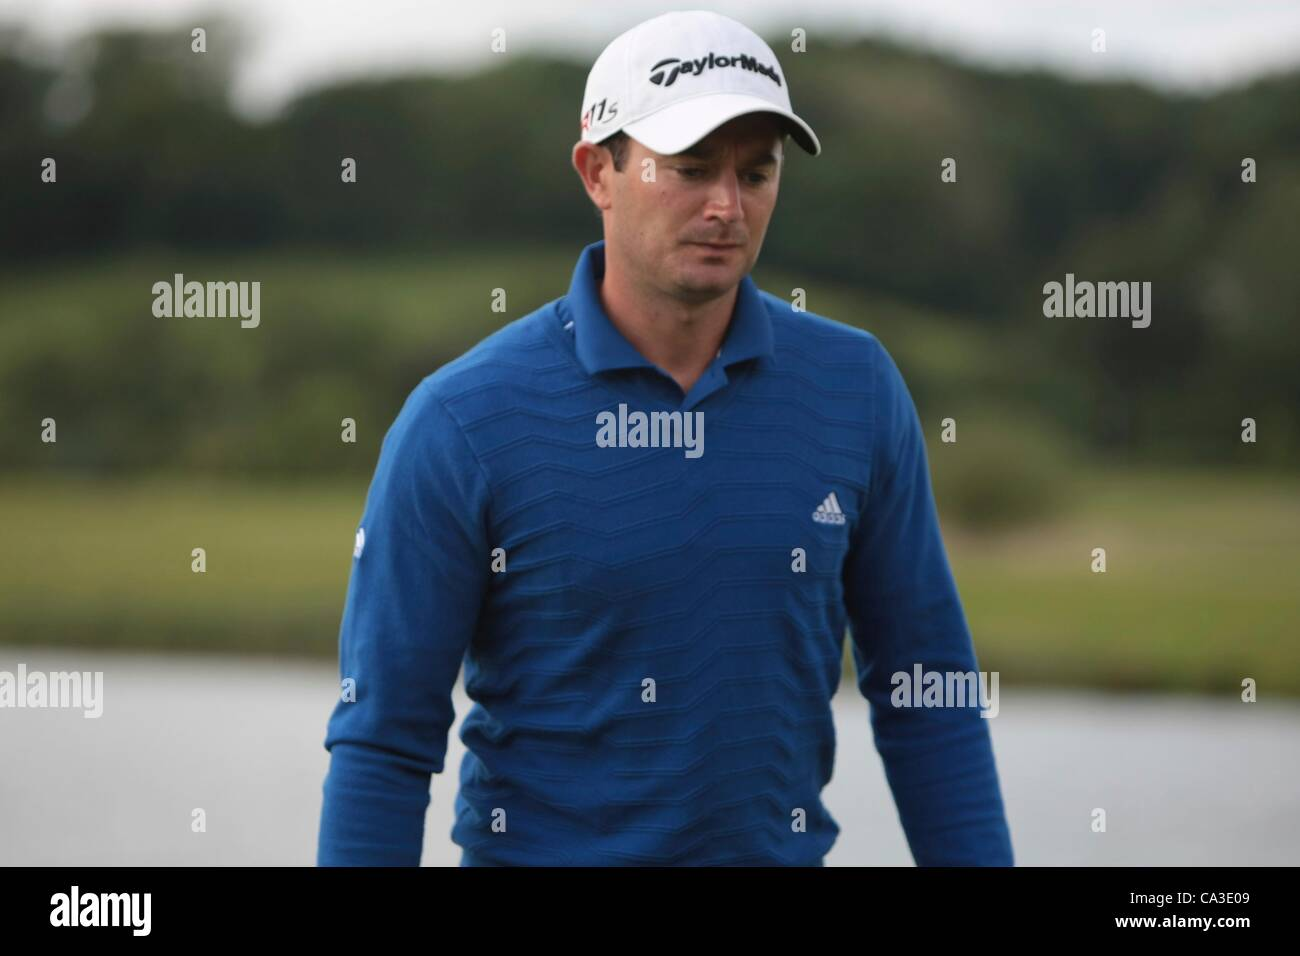 31.05.2012 Newport Wales. Gareth Maybin (NIR) in action on Day 1 of the ISPS Handa Wales Open from Celtic Manor. - Stock Image